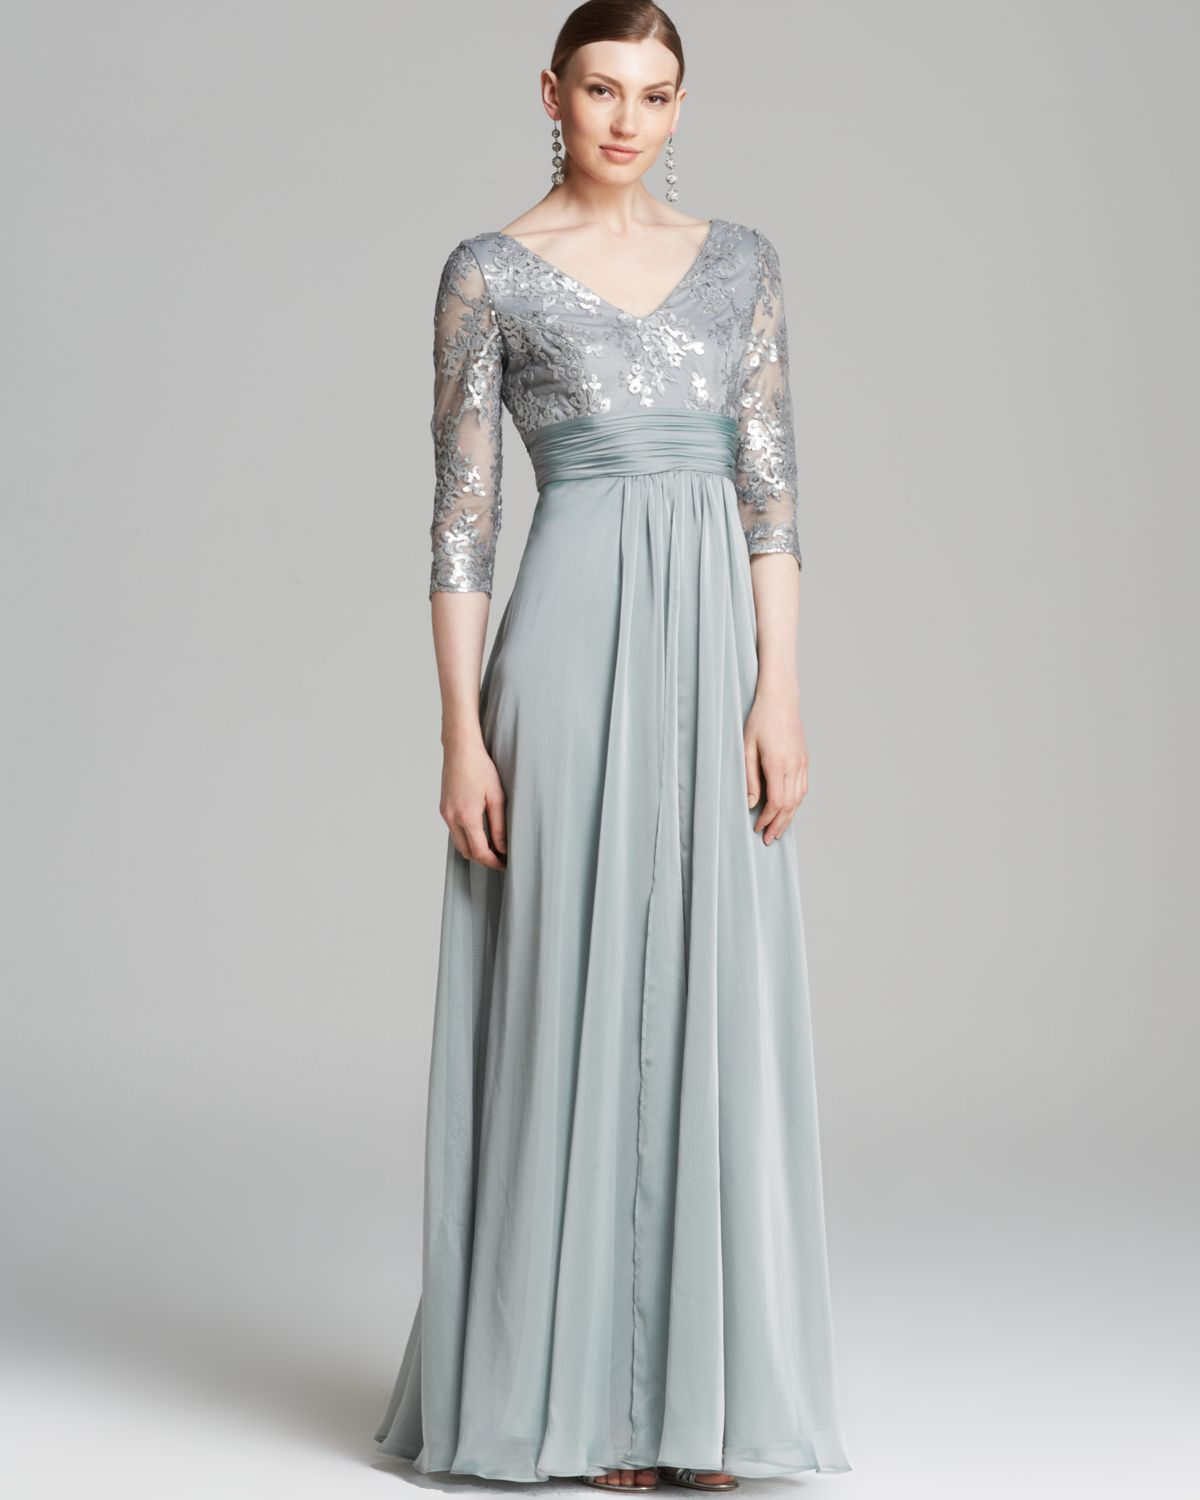 Lyst - Adrianna Papell Gown Three Quarter Sleeve V Neck Sequin ...